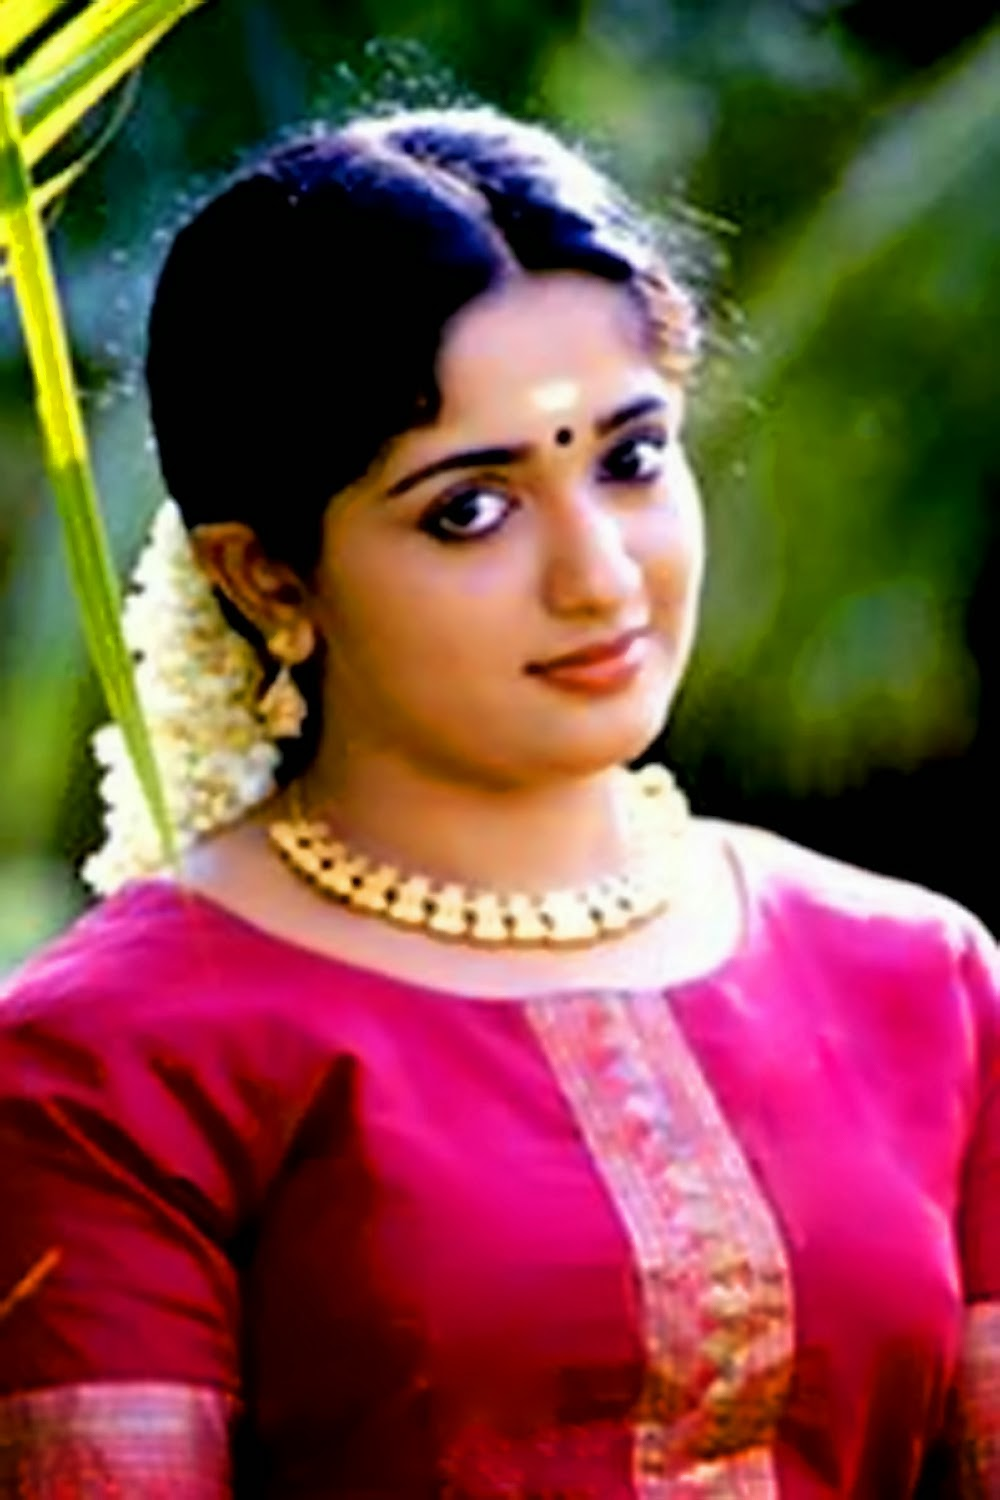 Very Kavya madhavan sex hd images download free confirm